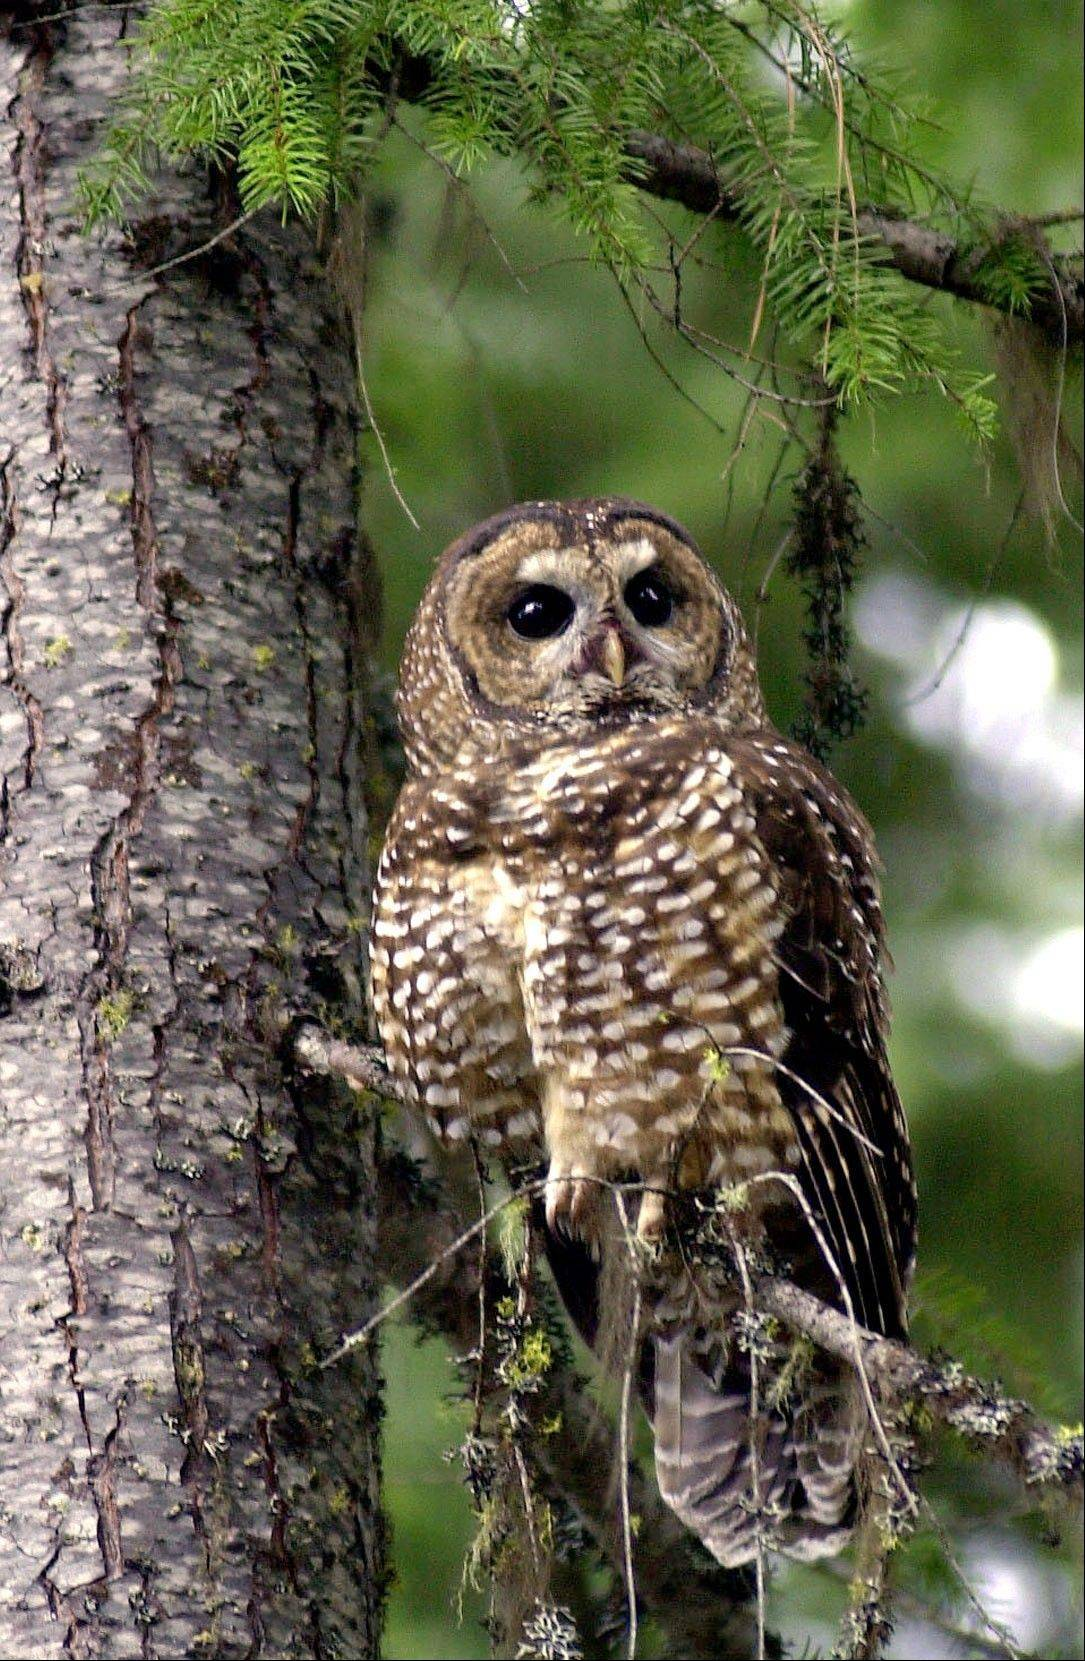 The Obama Administration�s overhaul of the strategy for saving northern spotted owls has been completed, and it nearly doubles the amount of forest designated as habitat critical to the owl�s survival four years ago by the Bush administration.